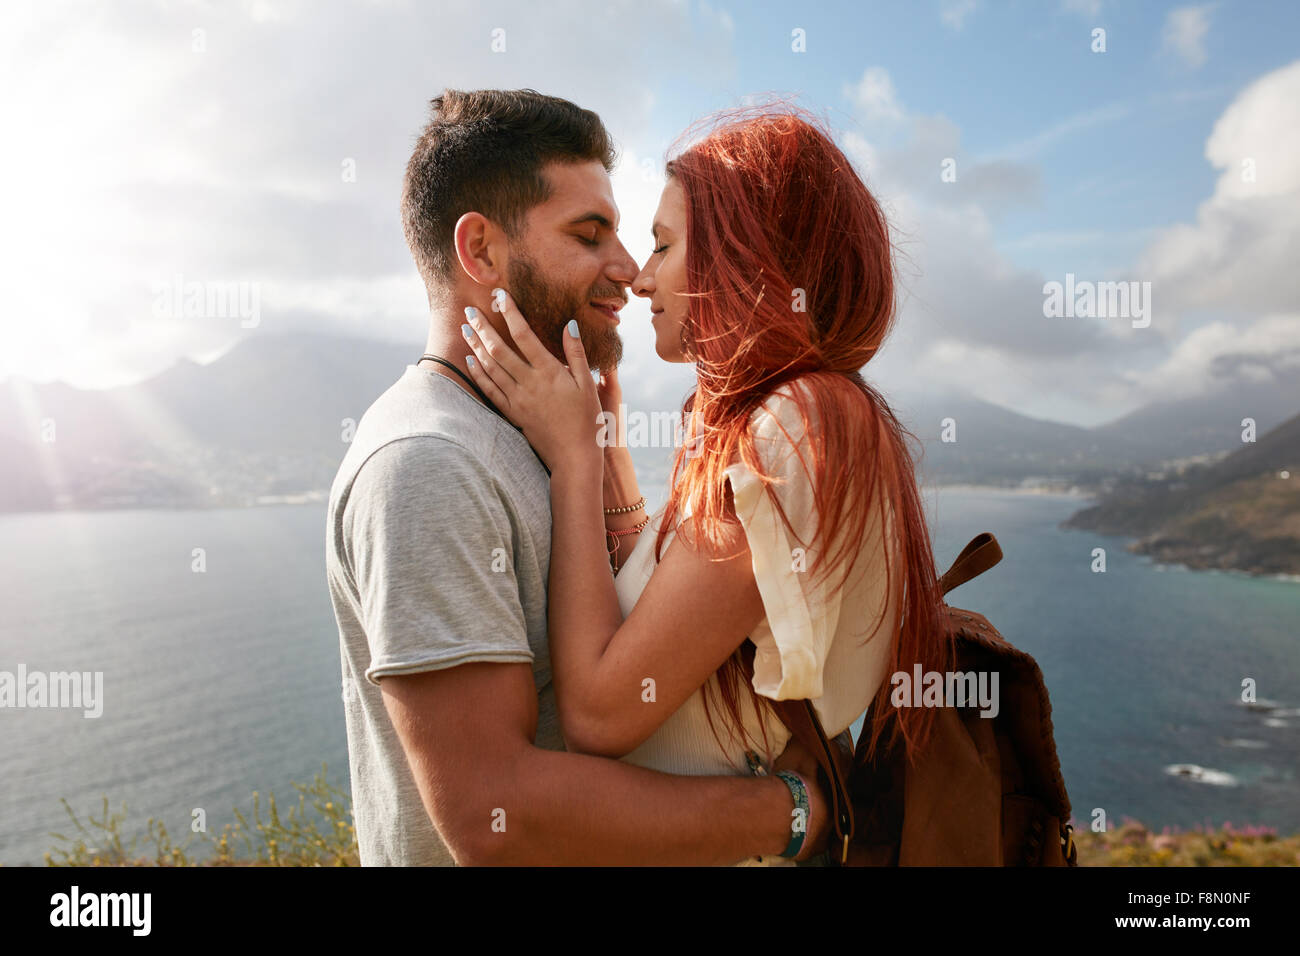 Portrait of young man and woman about to share a romantic kiss. Affectionate young couple enjoying their love in - Stock Image